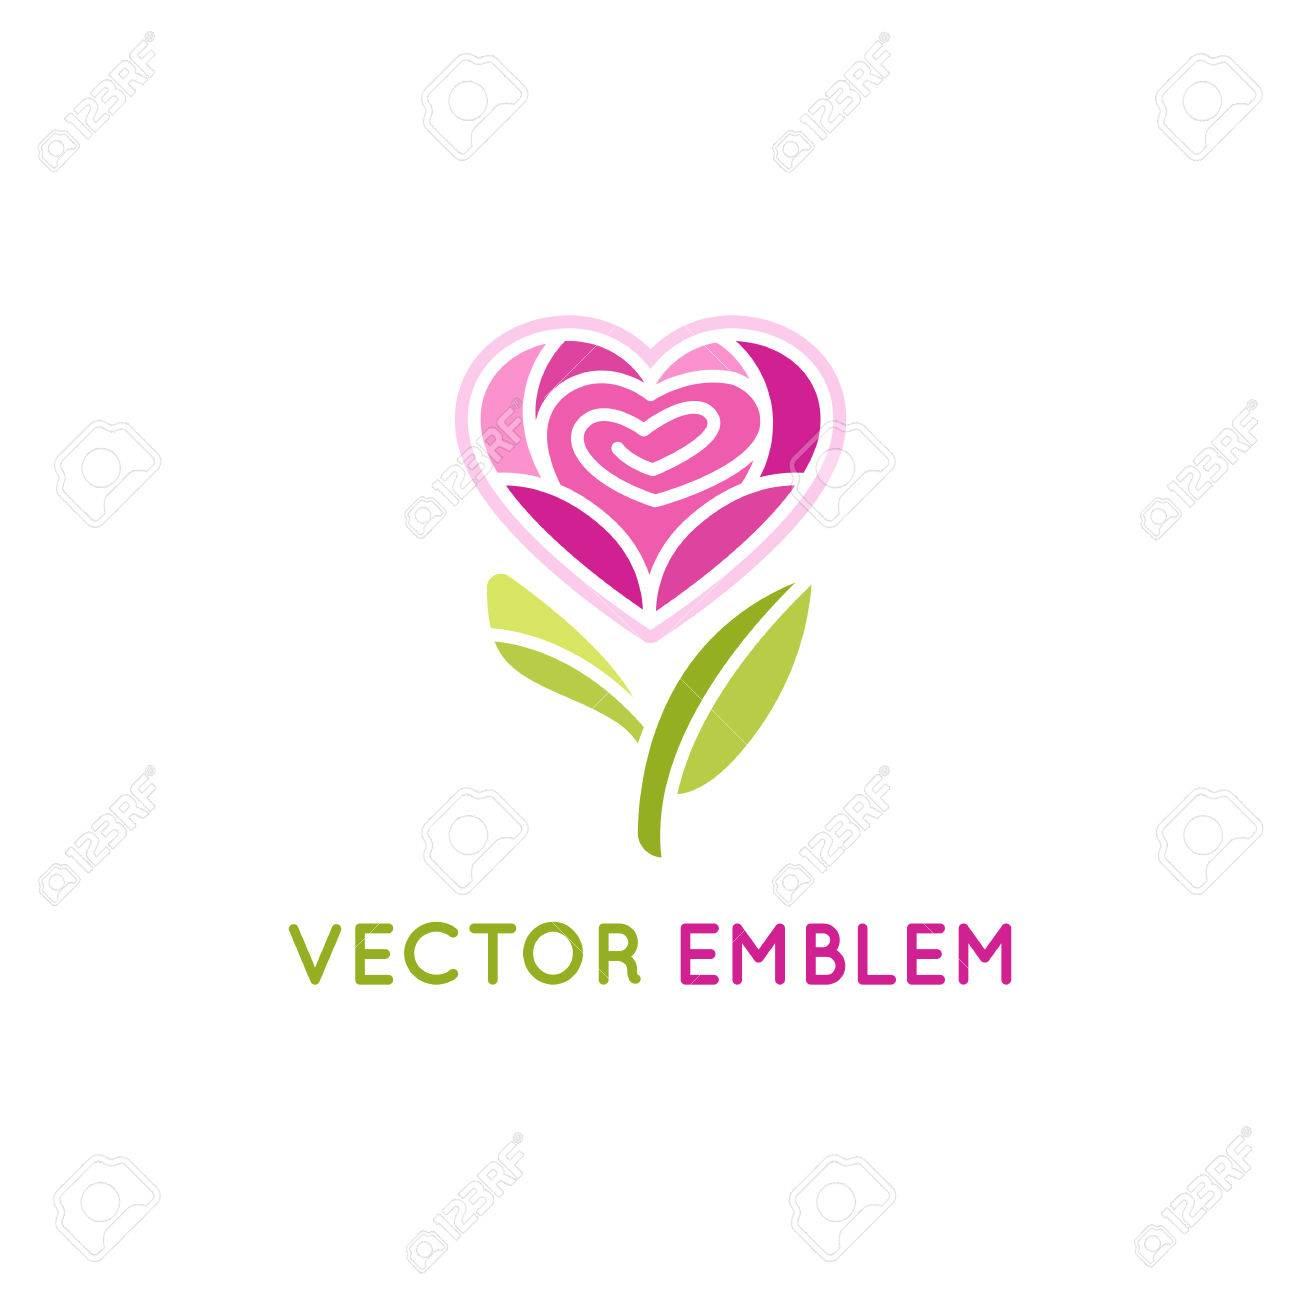 vector logo design template and emblem rose flower in heart